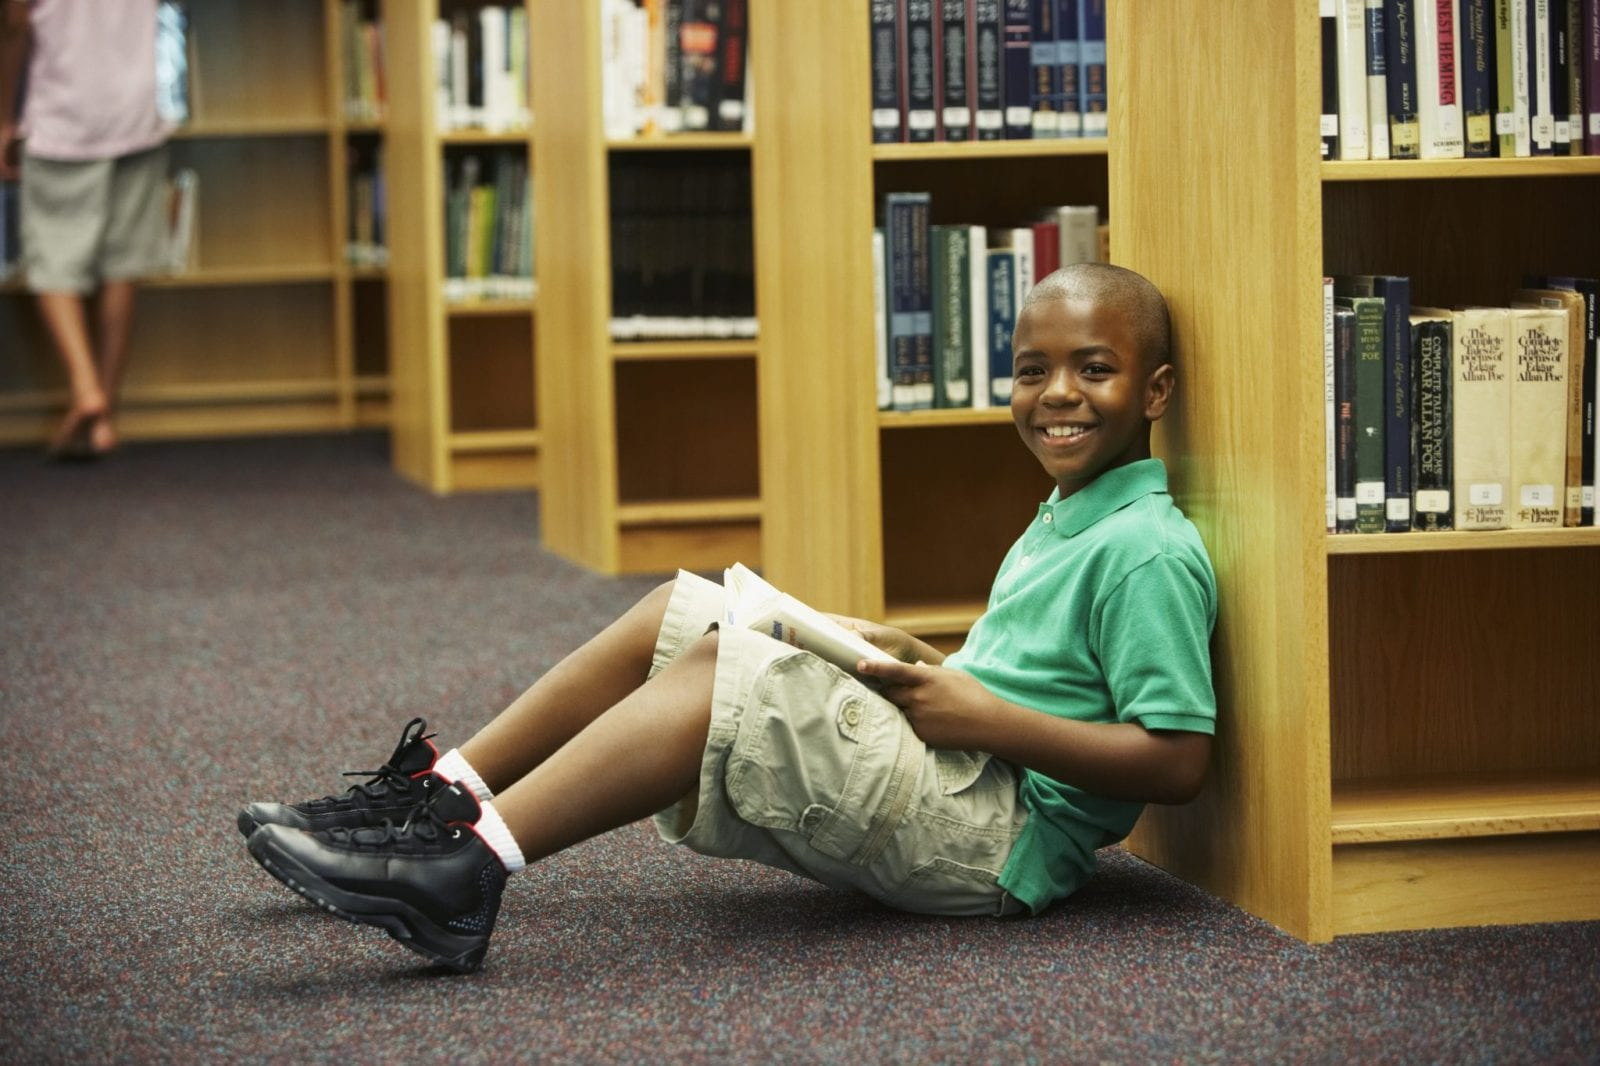 5 Simple Strategies To Assist With Comprehension